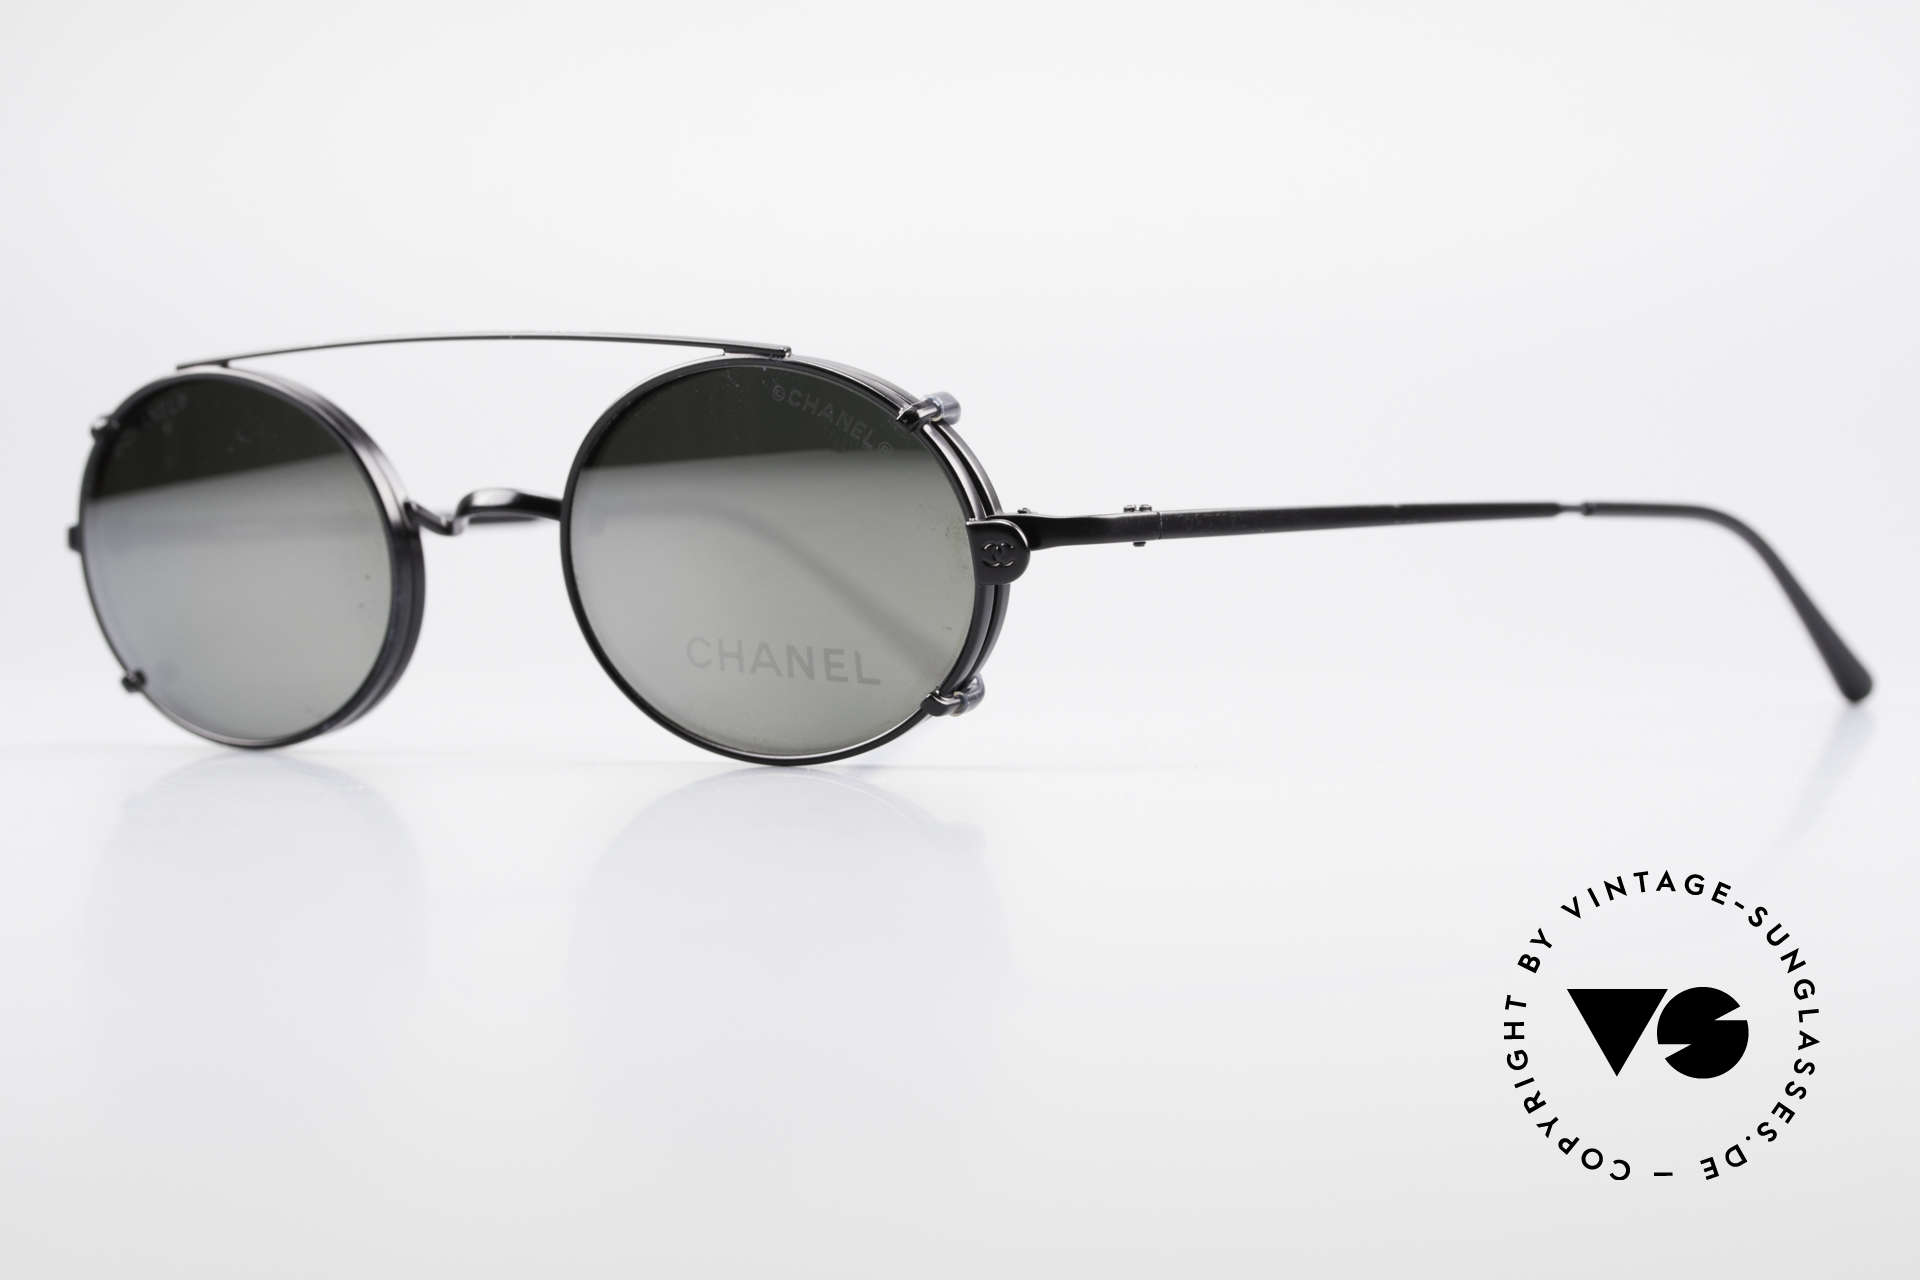 Chanel 2037 Luxury Glasses With Clip On, great combination of 'luxury lifestyle' & functionality, Made for Men and Women